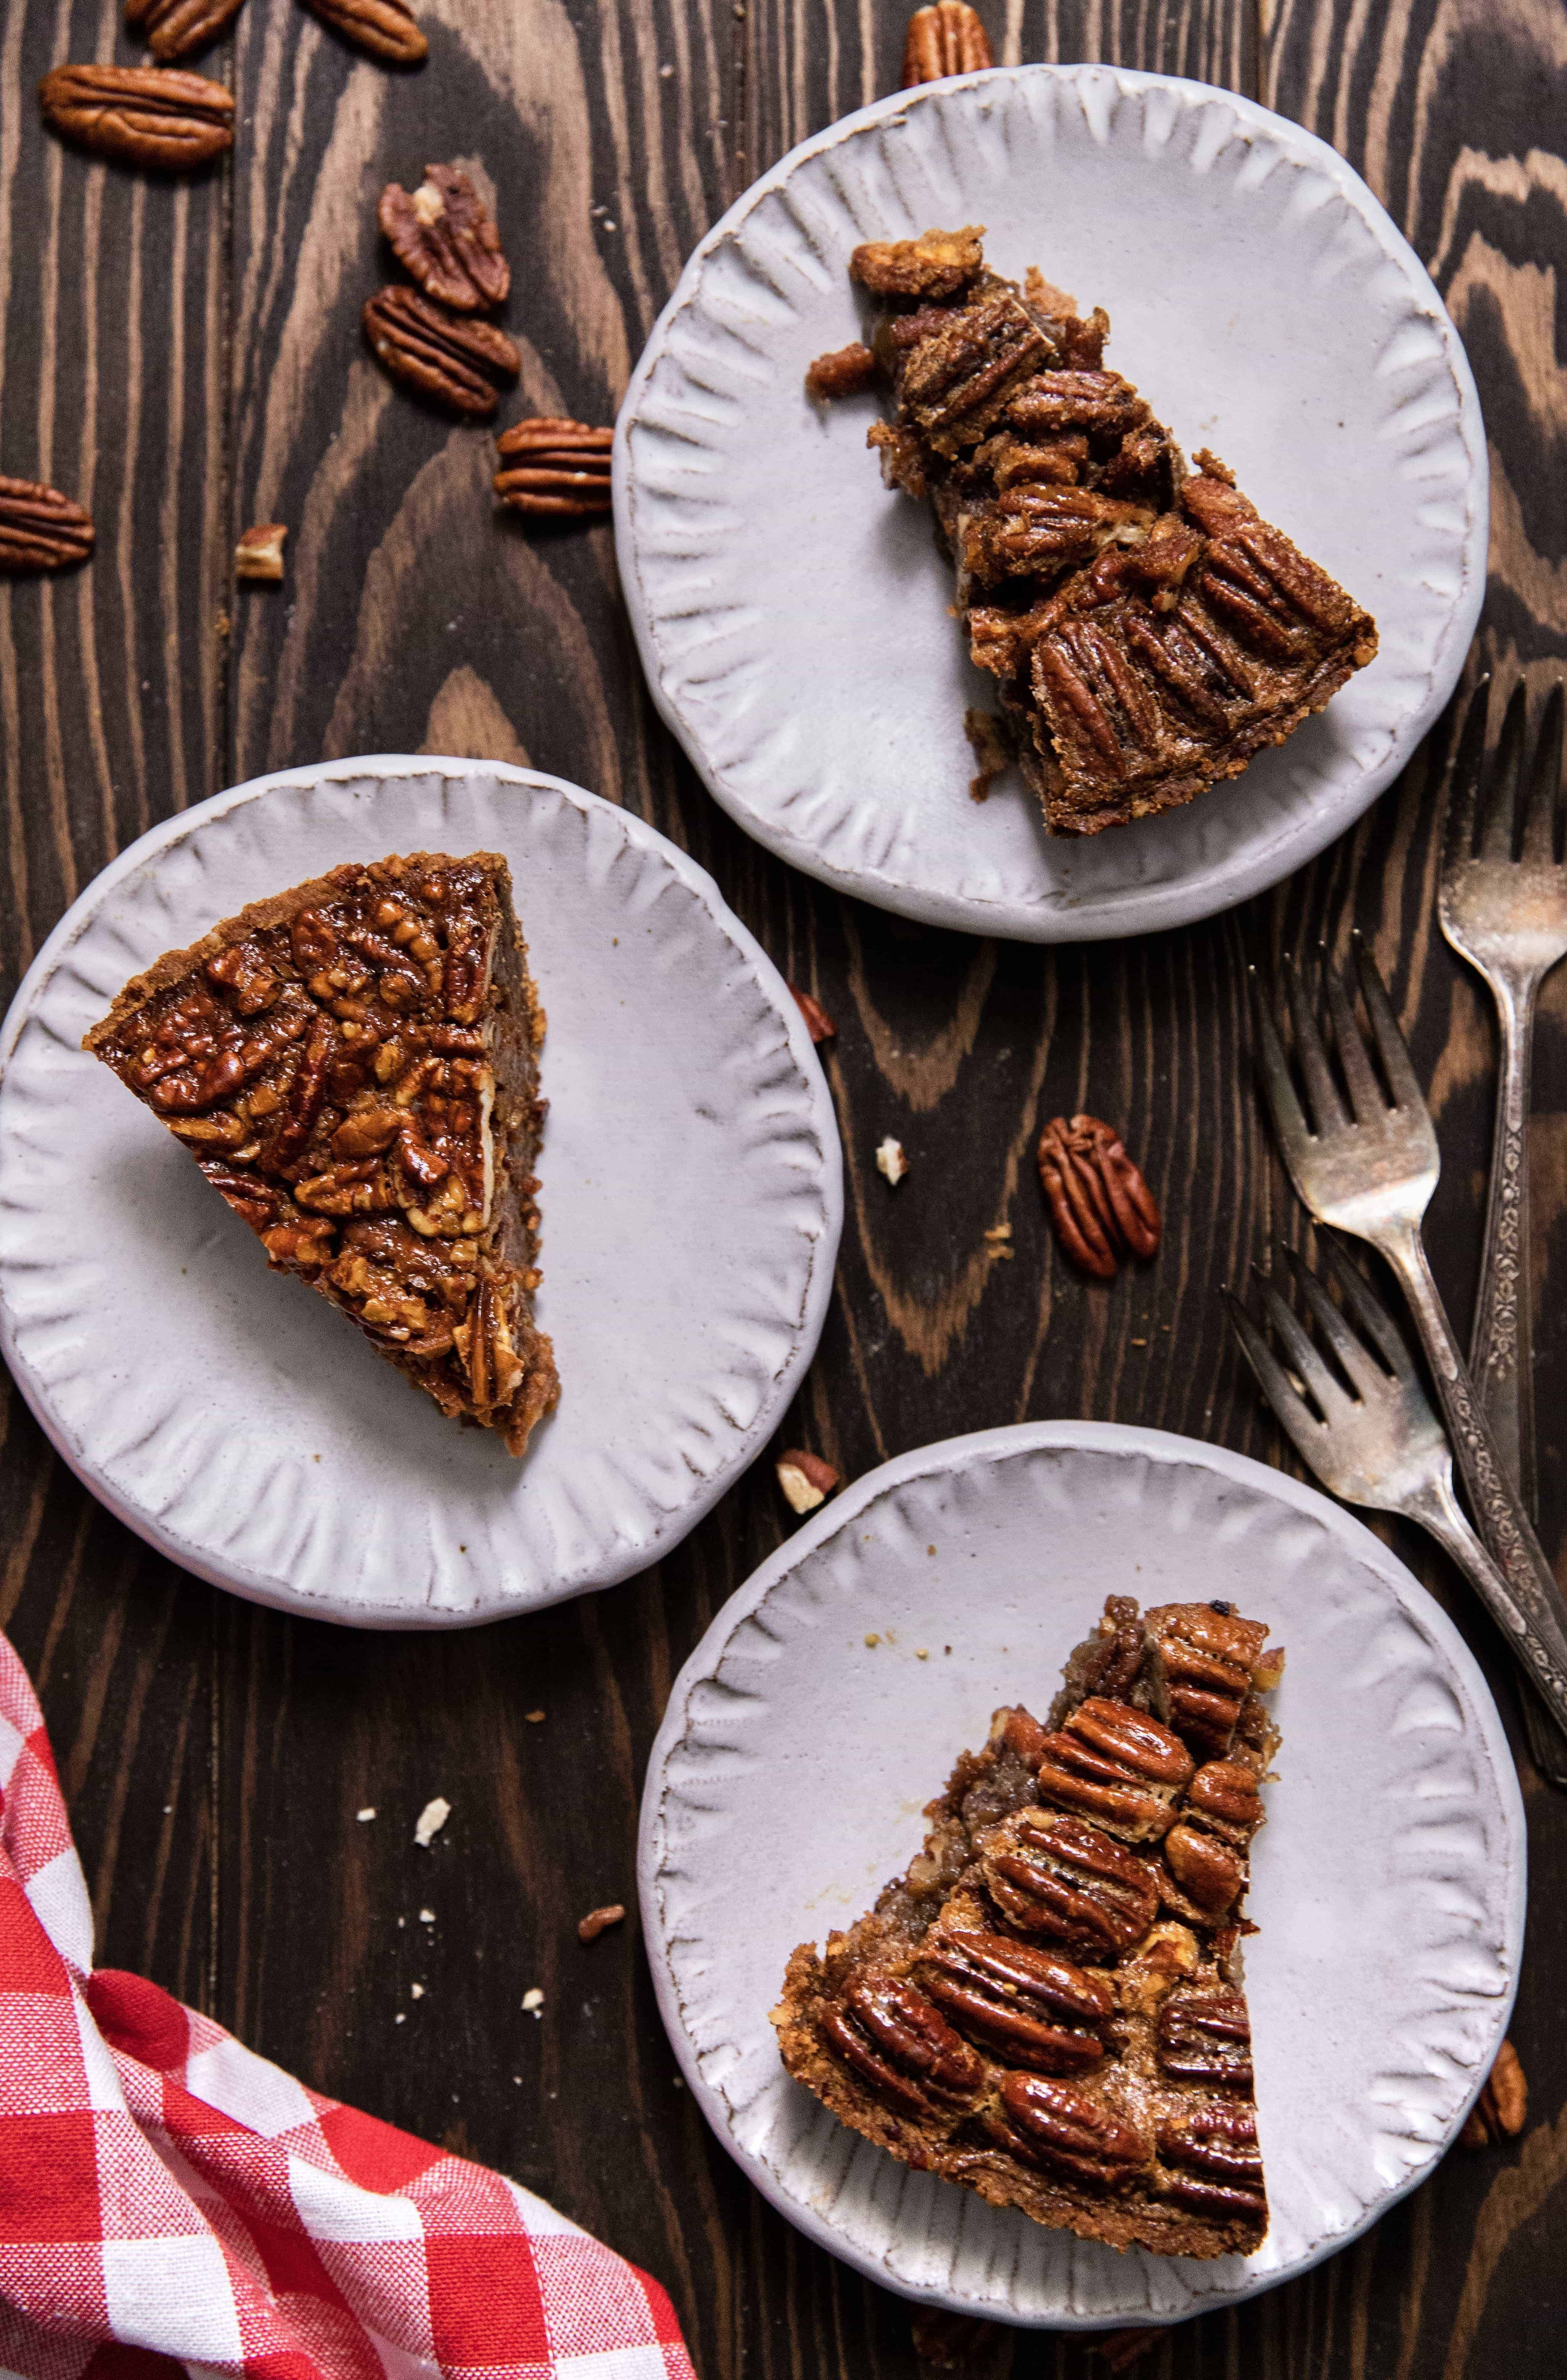 salted caramel, bourbon, and maple cinnamon brown sugar pecan pie slices